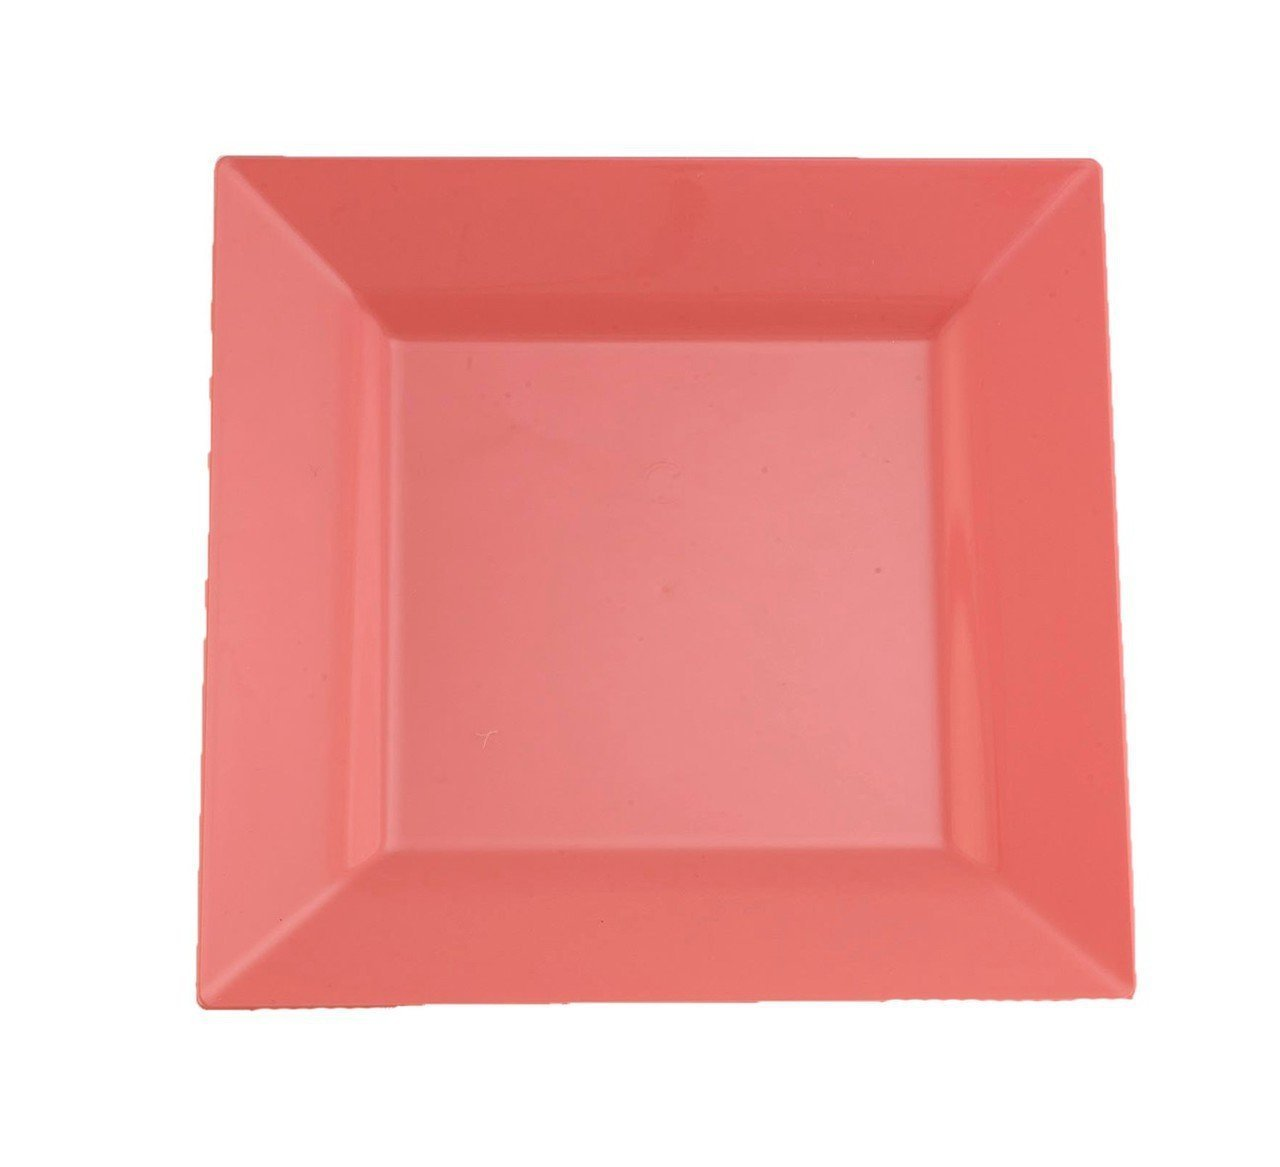 Kaya Collection - Coral Blush Peach Plastic Square 9.5'' Dinner Plates - Disposable or Reusable - 1 Case (120 Plates)